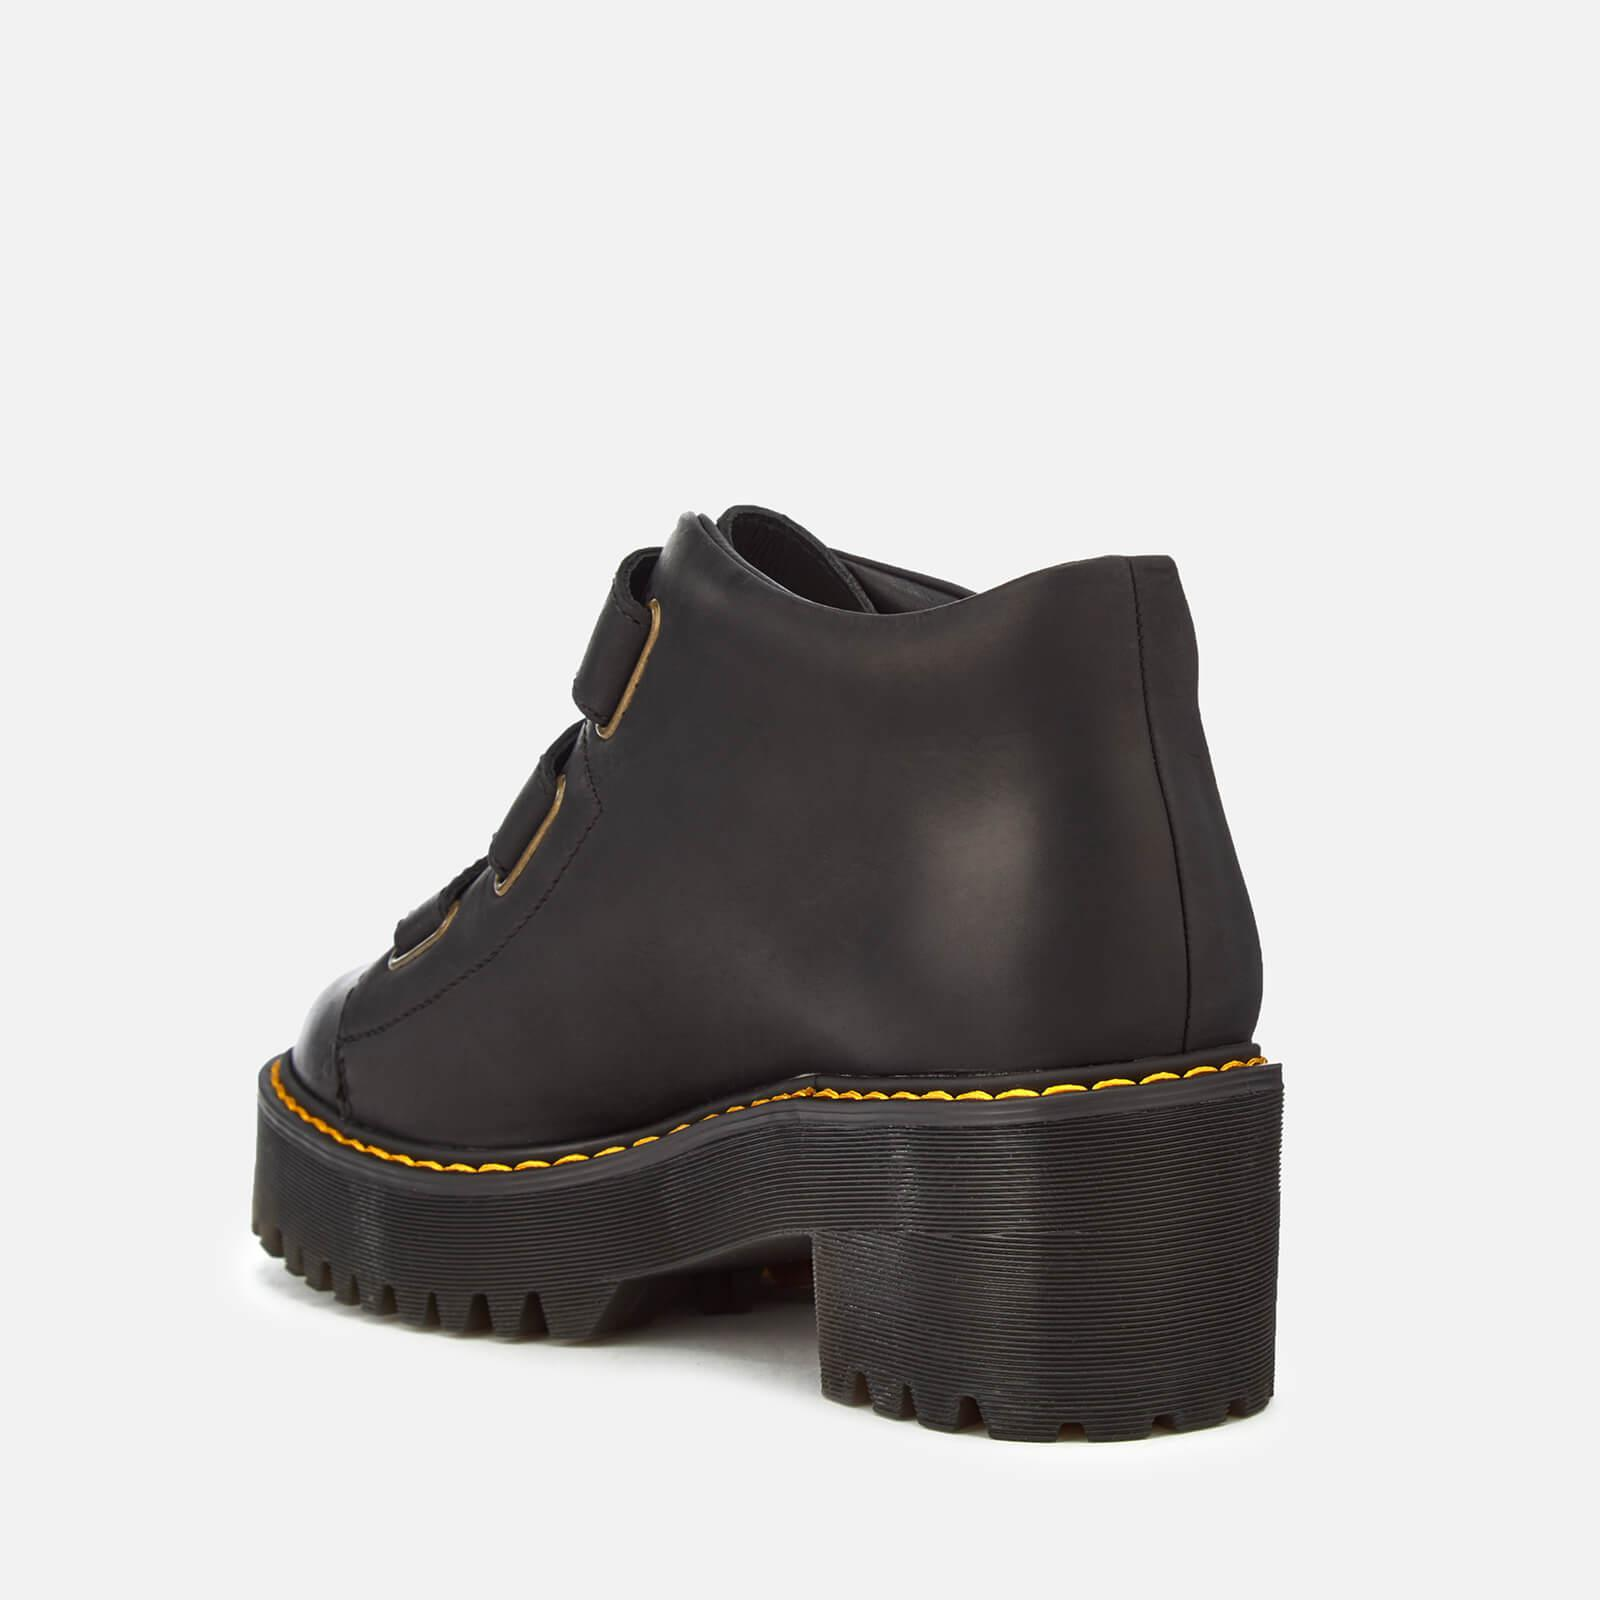 bbefbd561b452 Lyst - Dr. Martens Coppola Leather Buckle Heeled Boots in Black